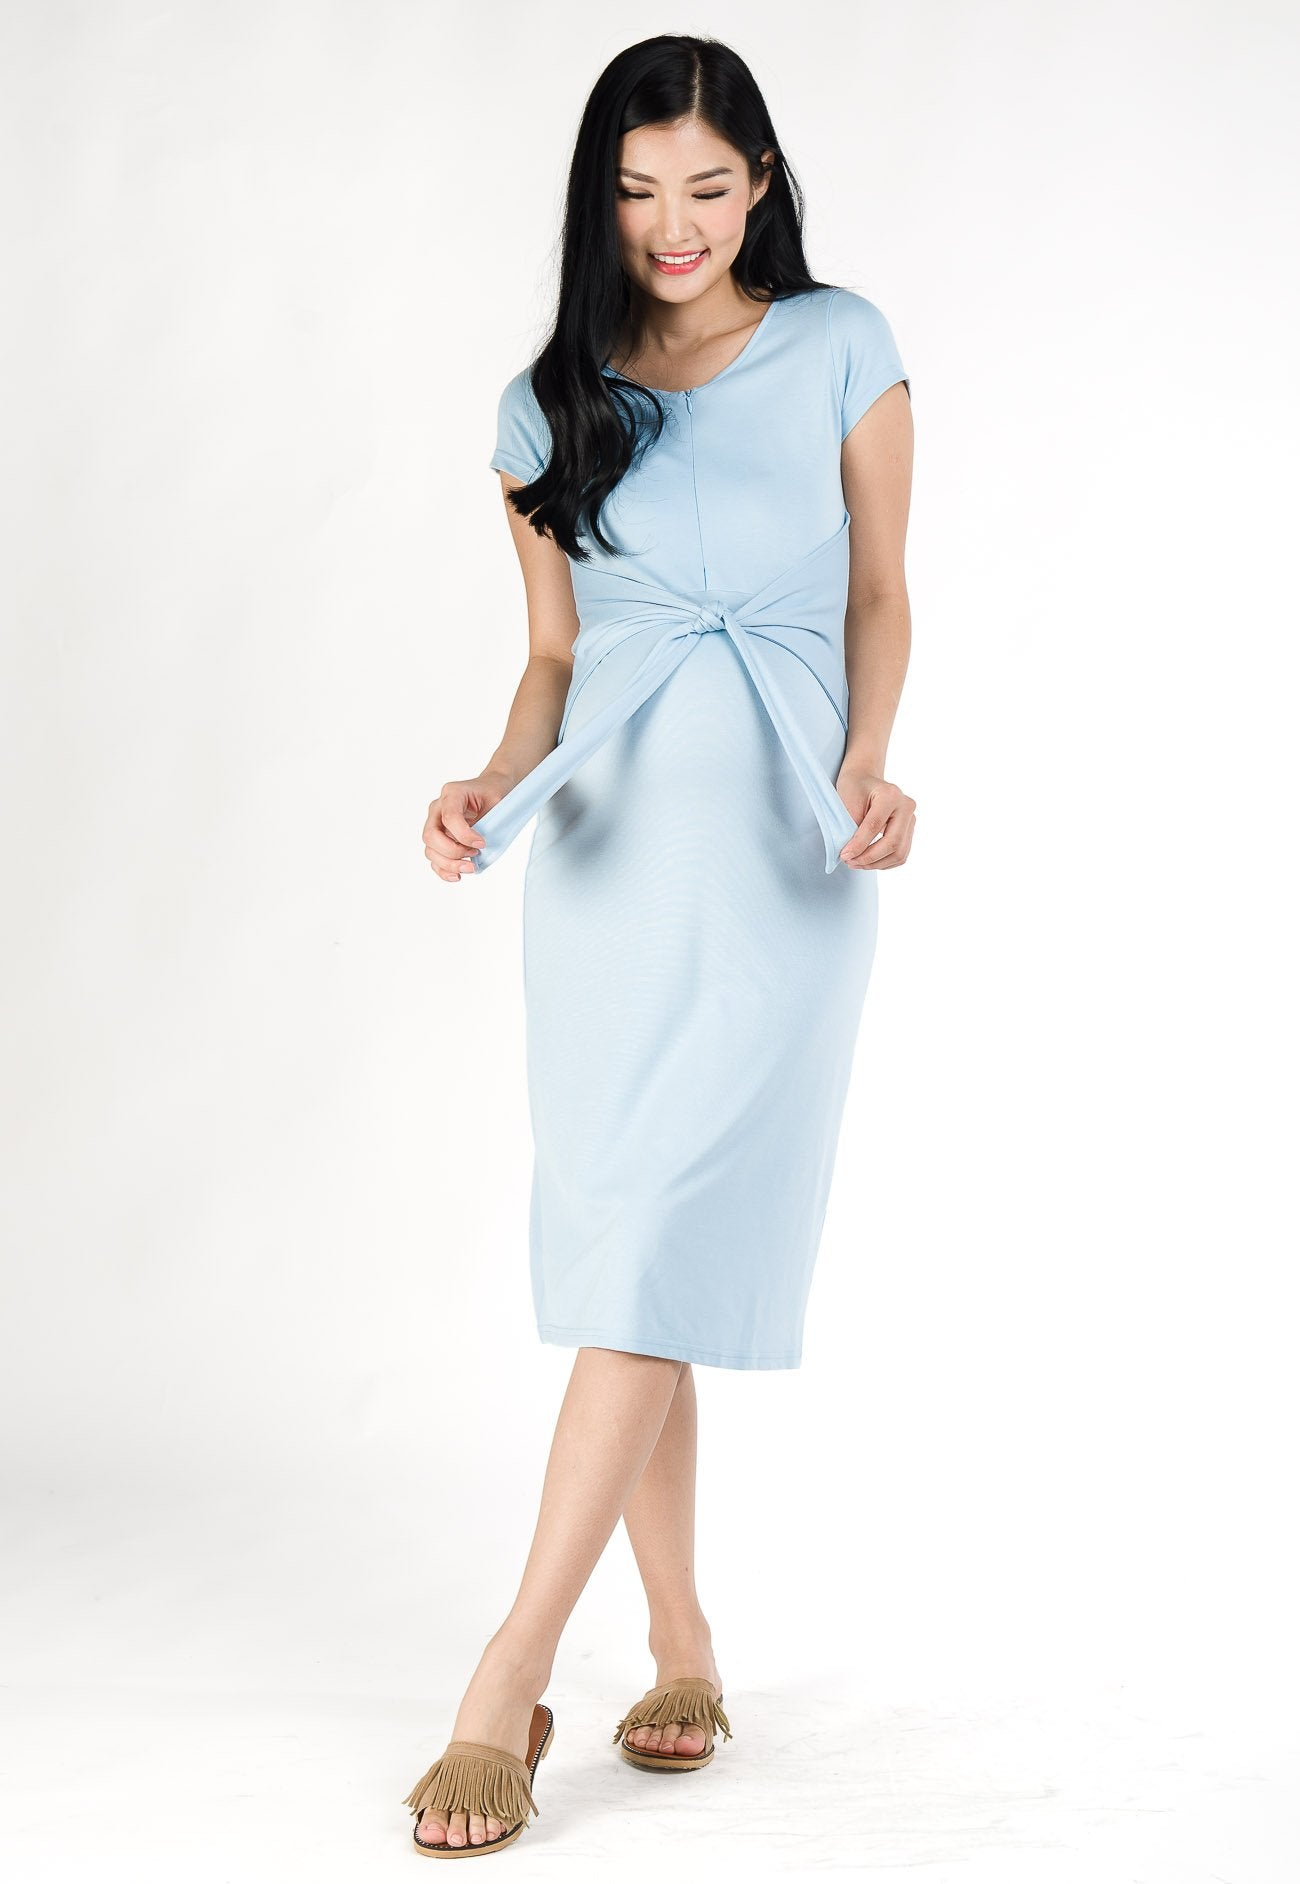 Camille Front Tie Nursing Dress in Light Blue  by Jump Eat Cry - Maternity and nursing wear